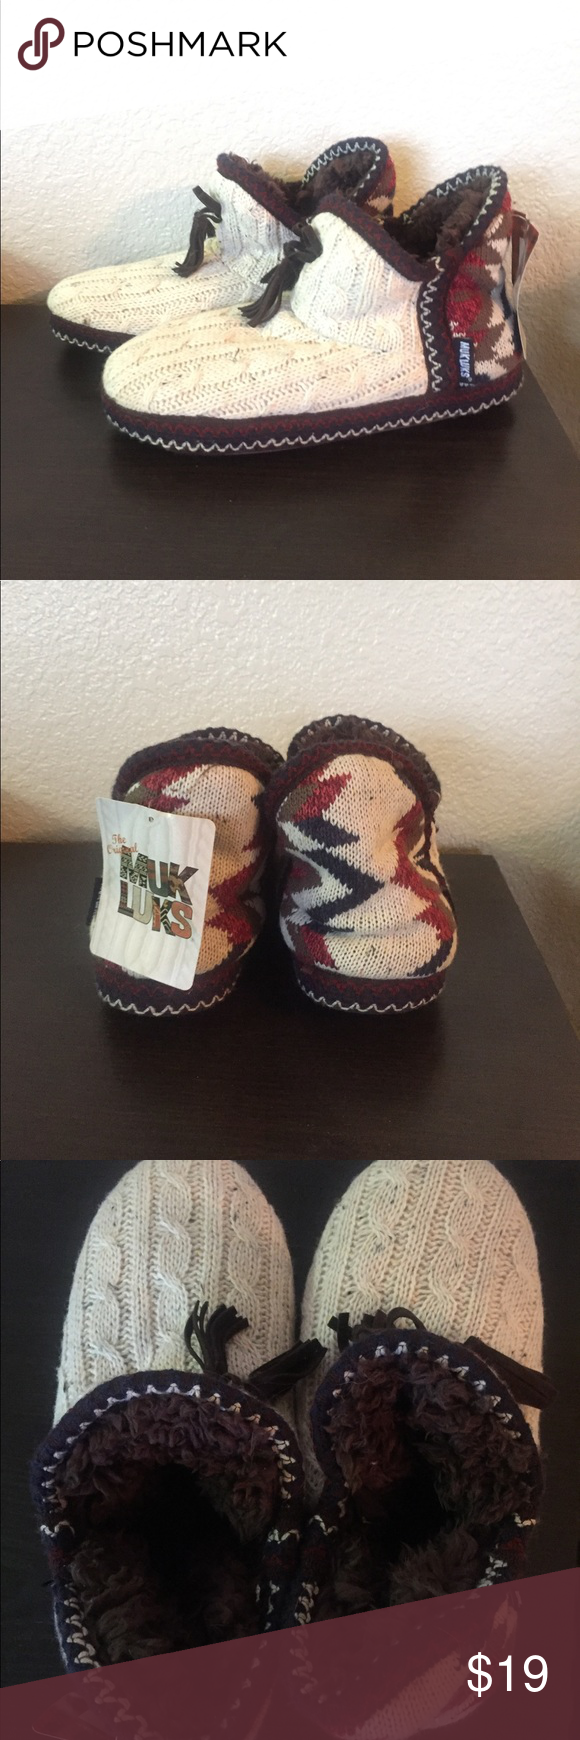 Magnificent Knitted Mukluks Pattern Festooning - Sewing Pattern for ...